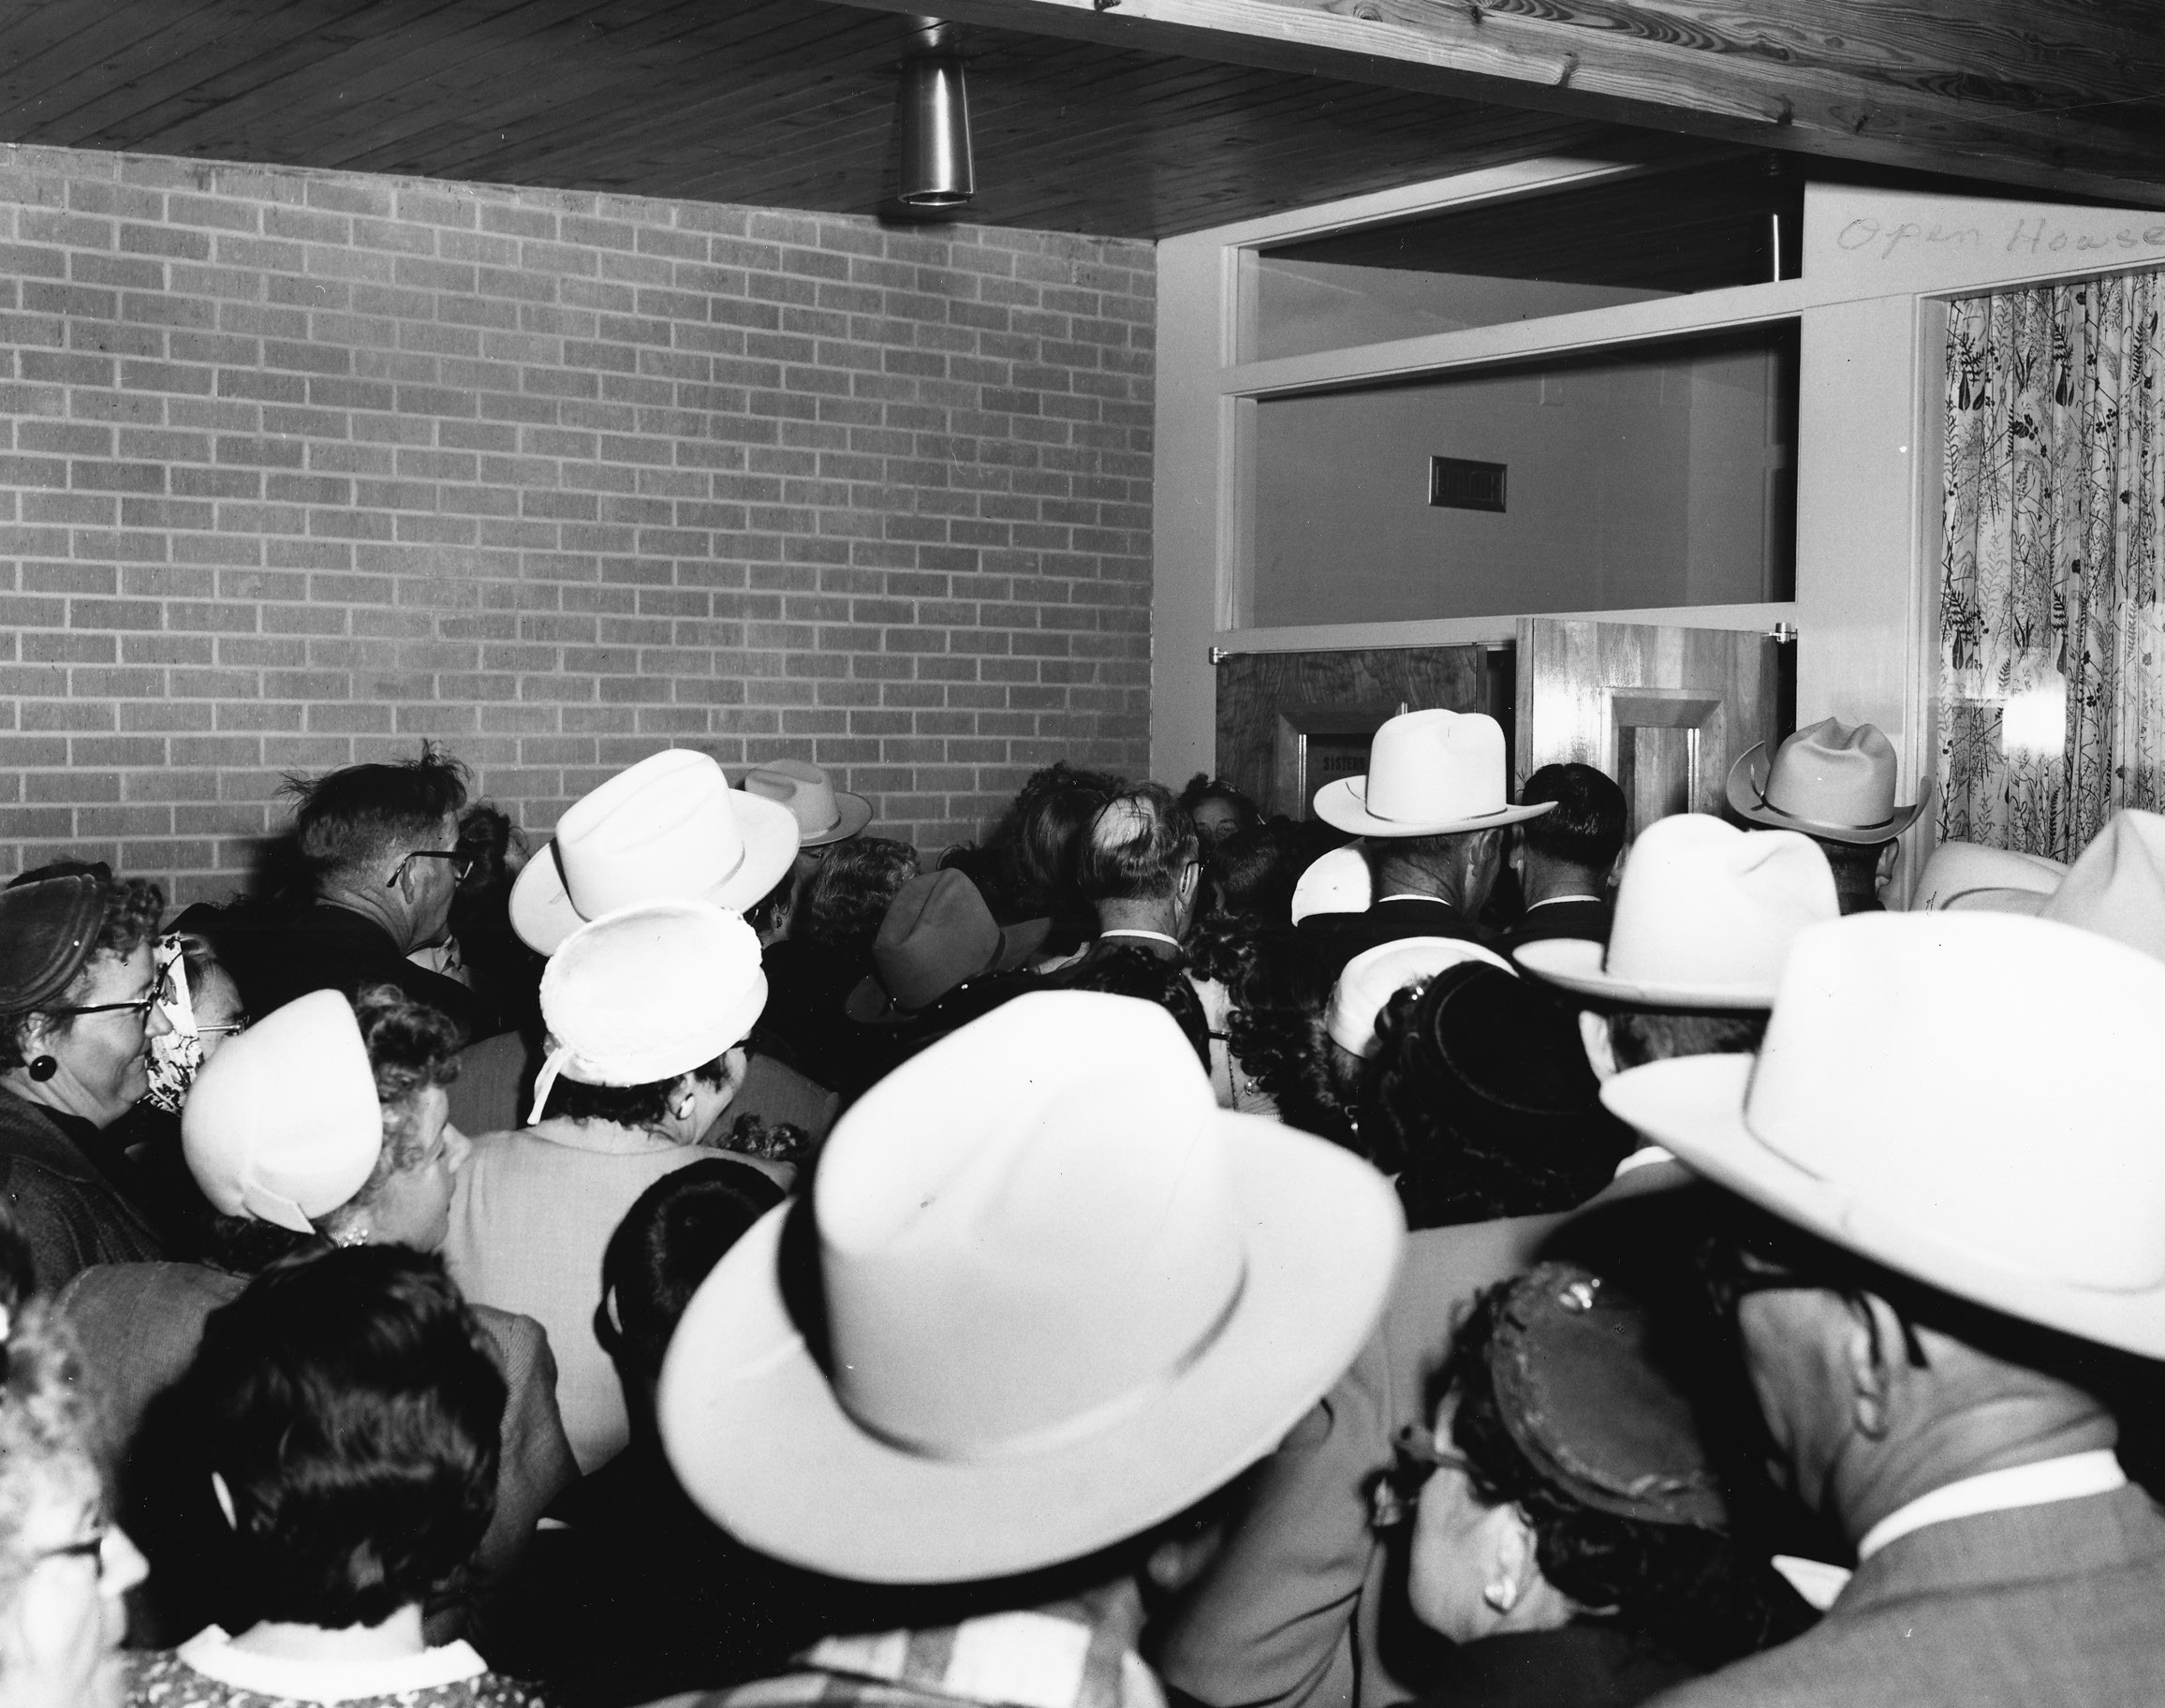 Visitors crowd the front door at the brand new Mercy Hospital grand opening in 1956. The first patient was admitted January 7, 1957.